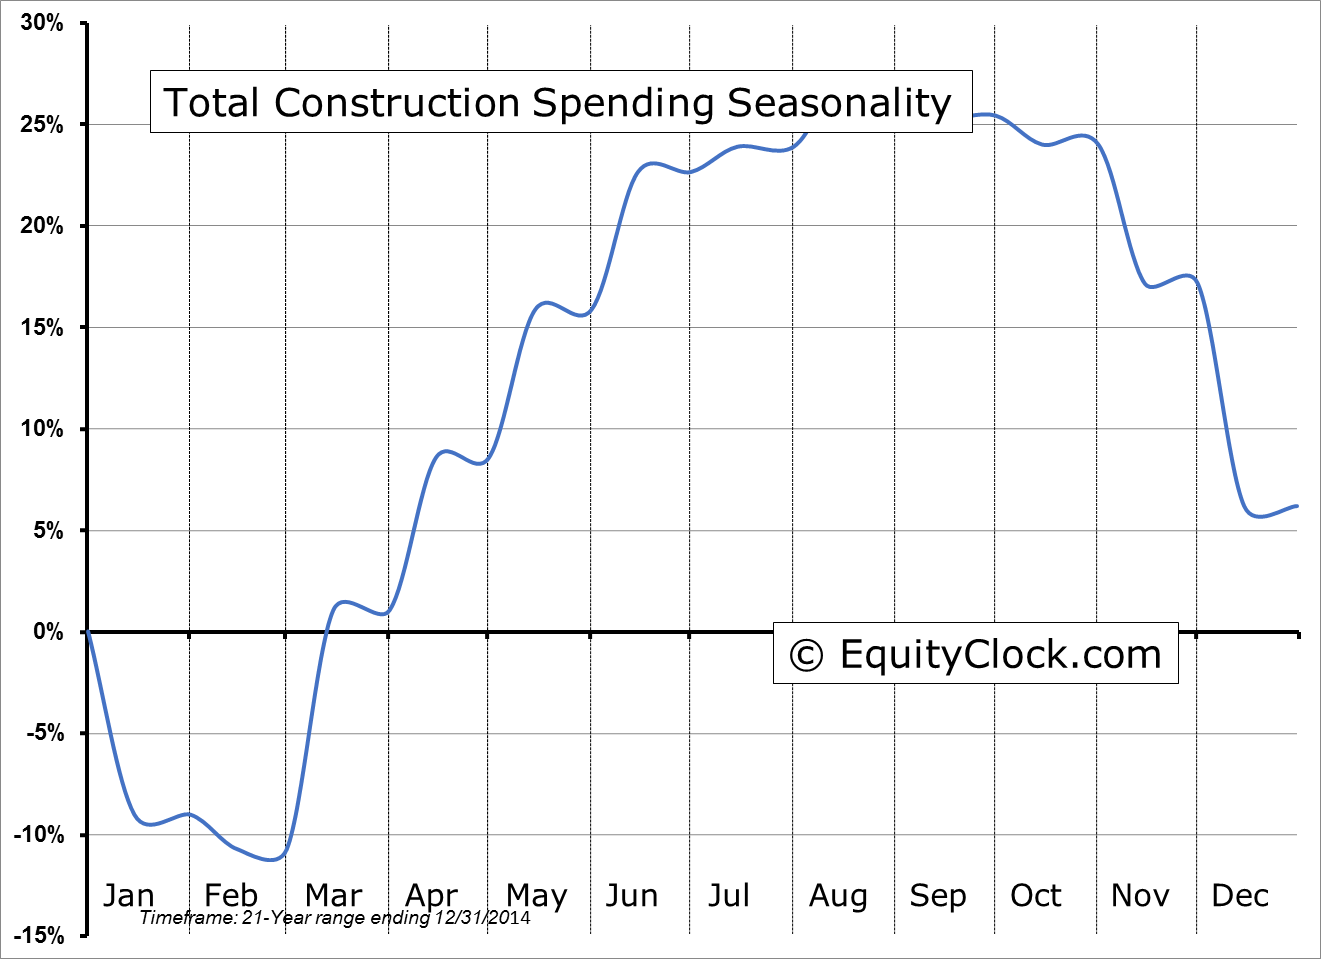 Total Construction Spending Seasonality